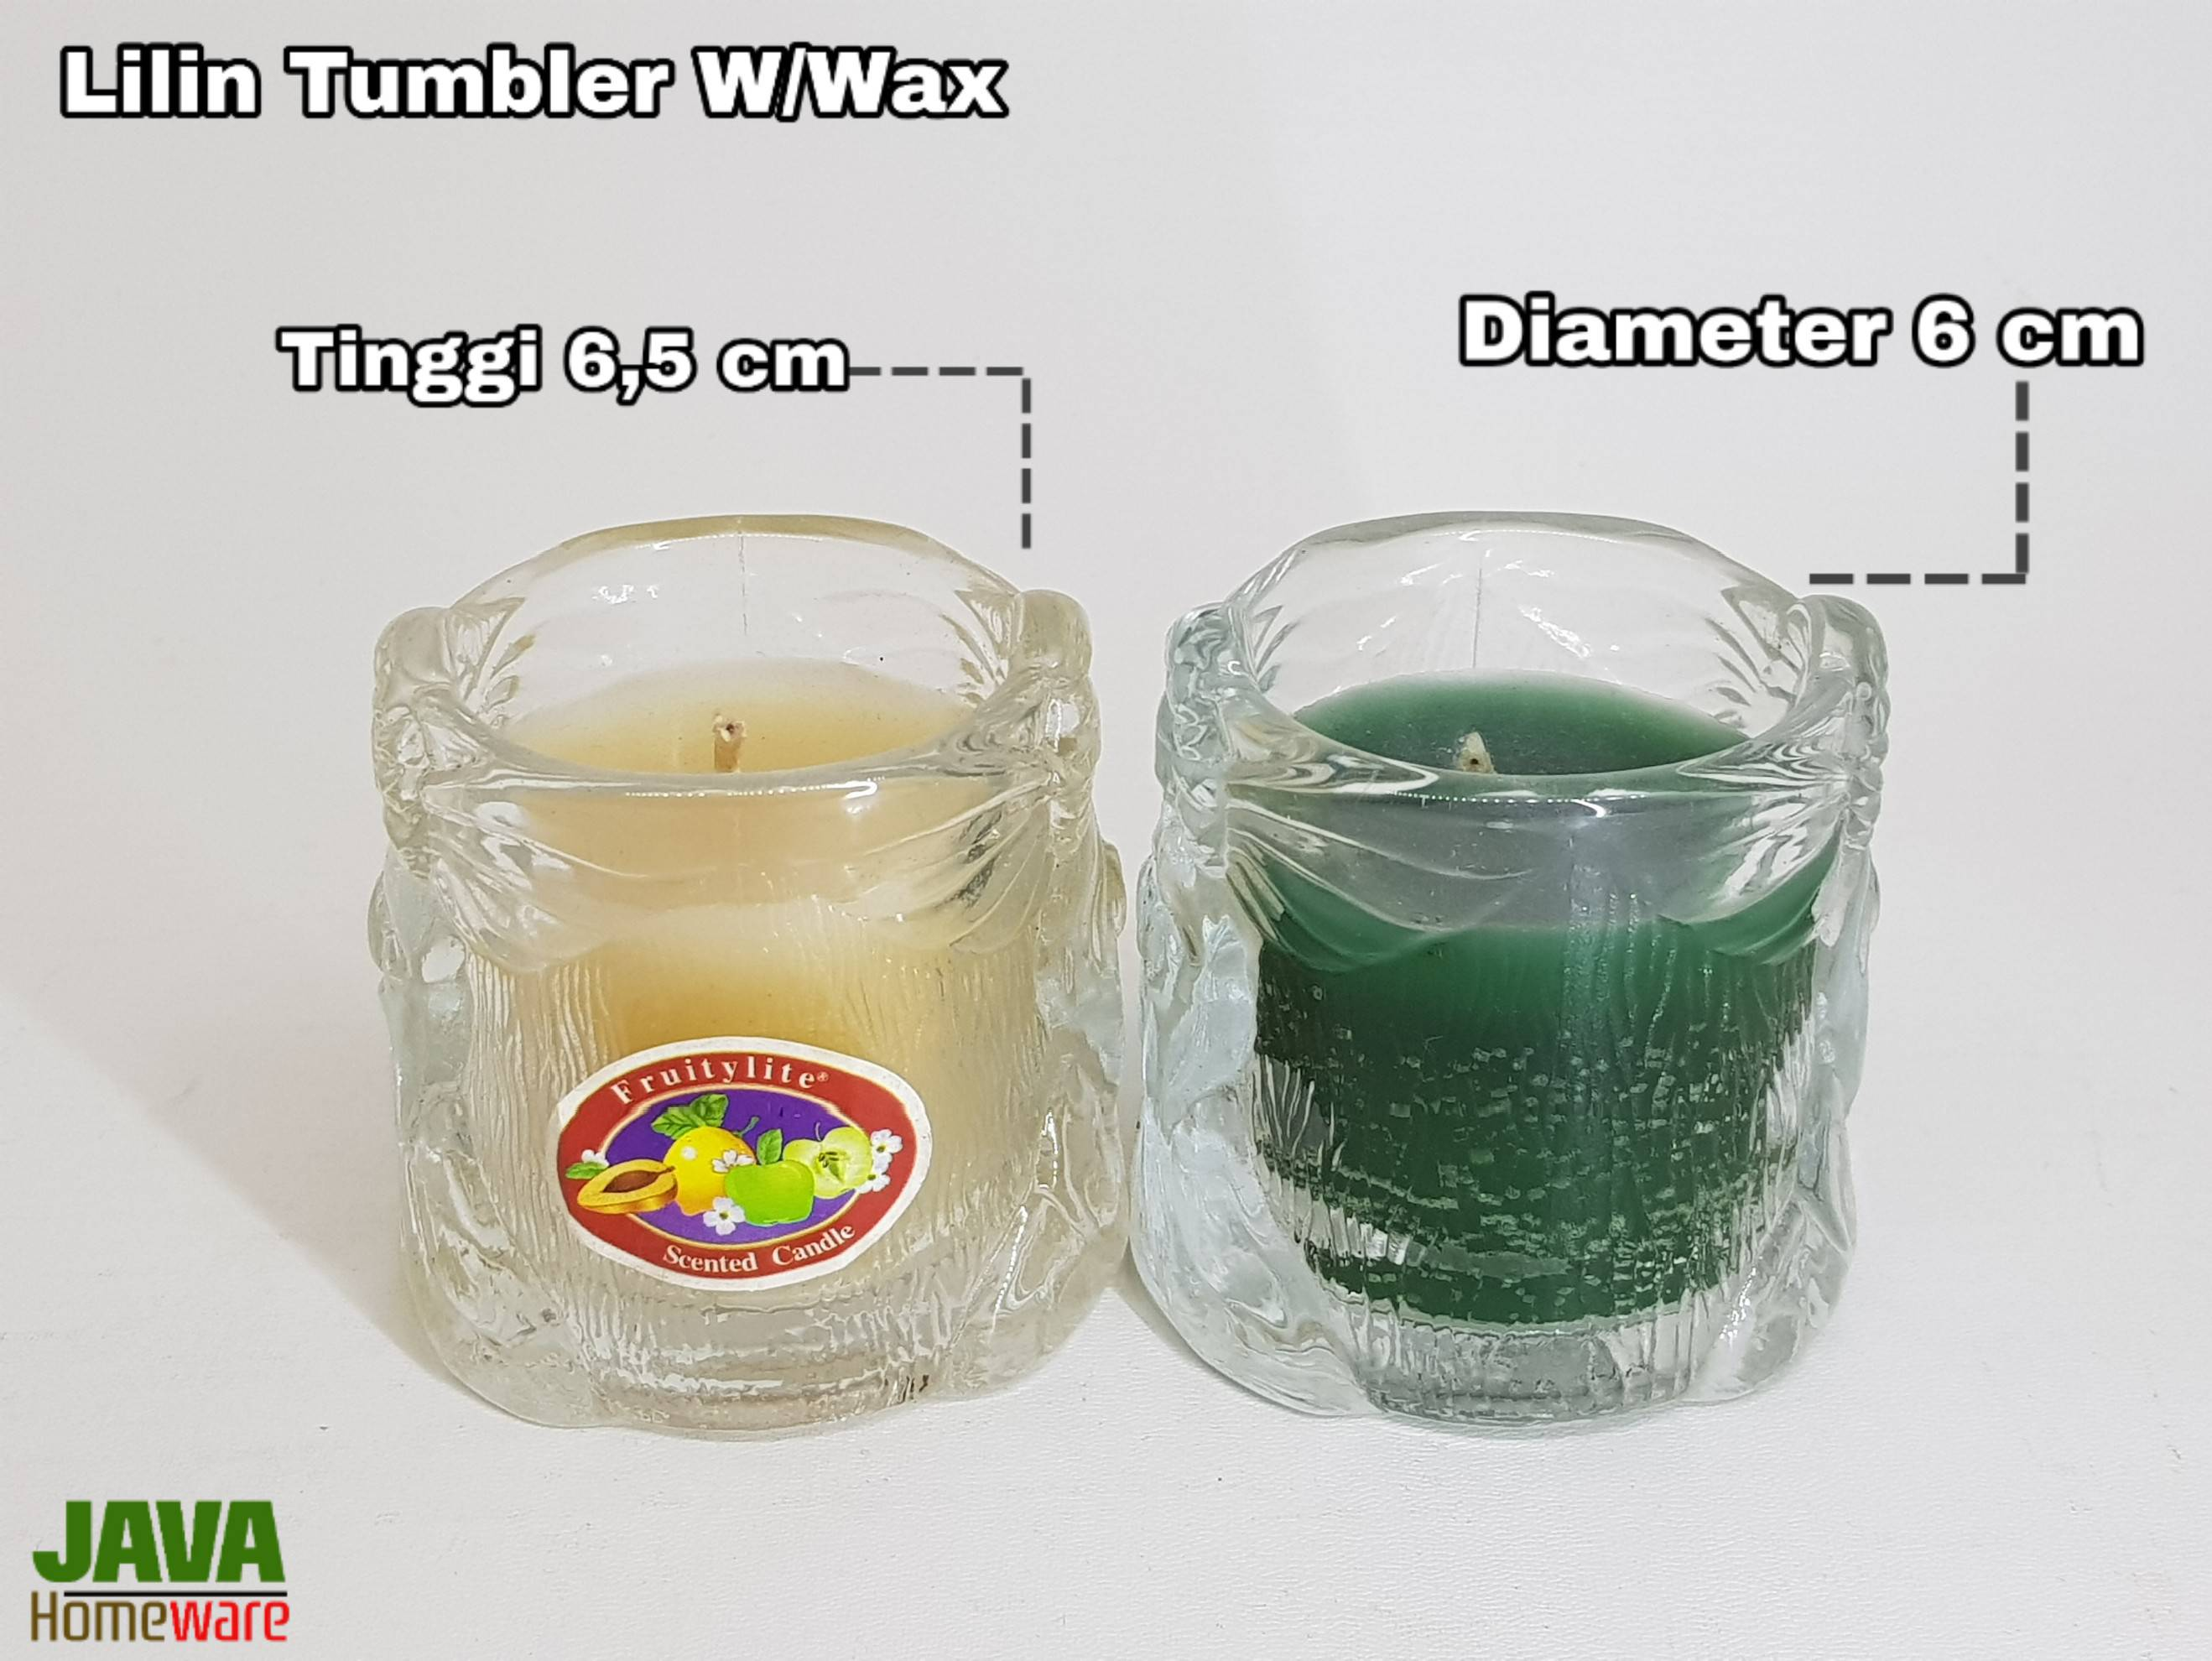 Lilin Tumbler W/Wax